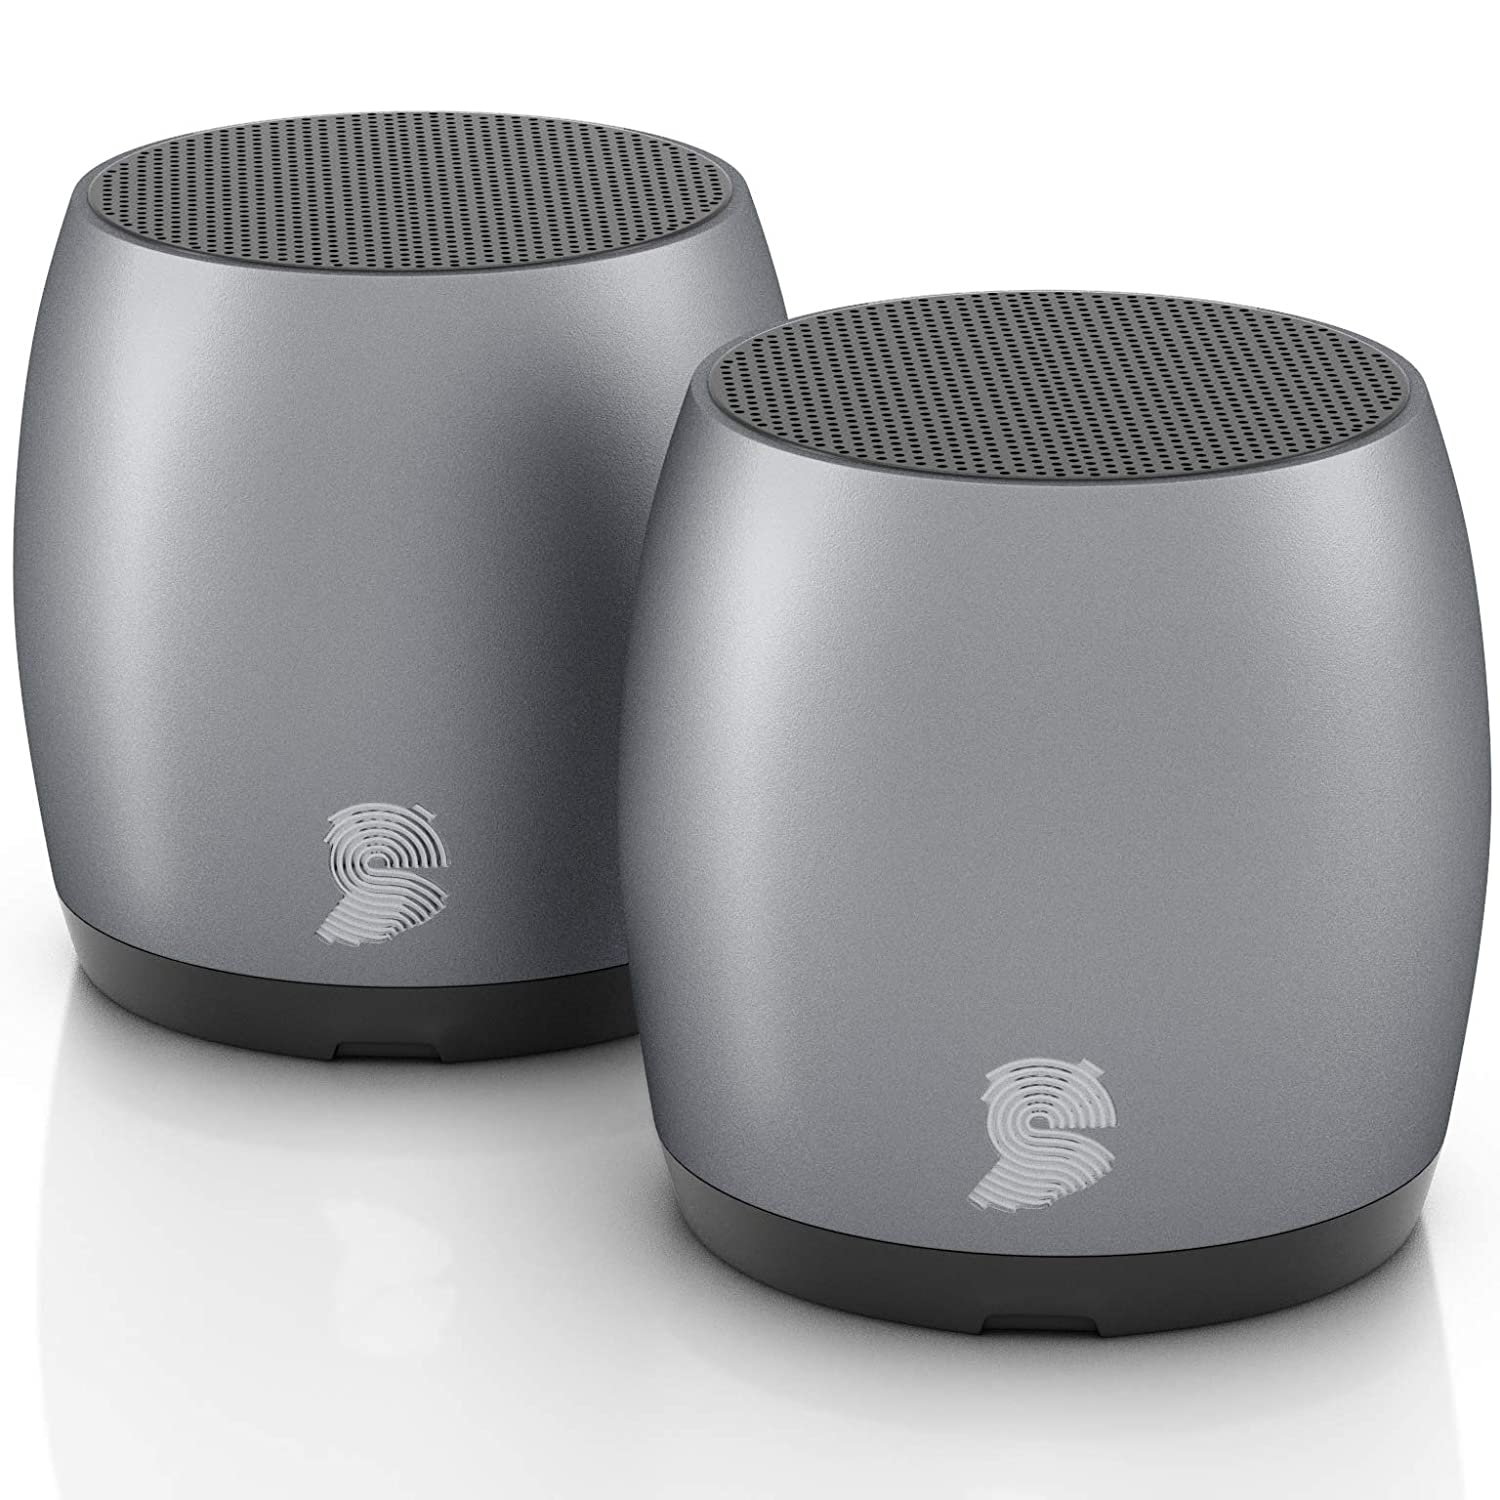 HeadSound G2 Portable Wireless Bluetooth Speakers, Latest Powerful Dual True Wireless Mini Speaker Set w/Surround HD Sound, Instant Pairing w/Built in Mic, HandsFree Calls for Home, Office, Outdoor